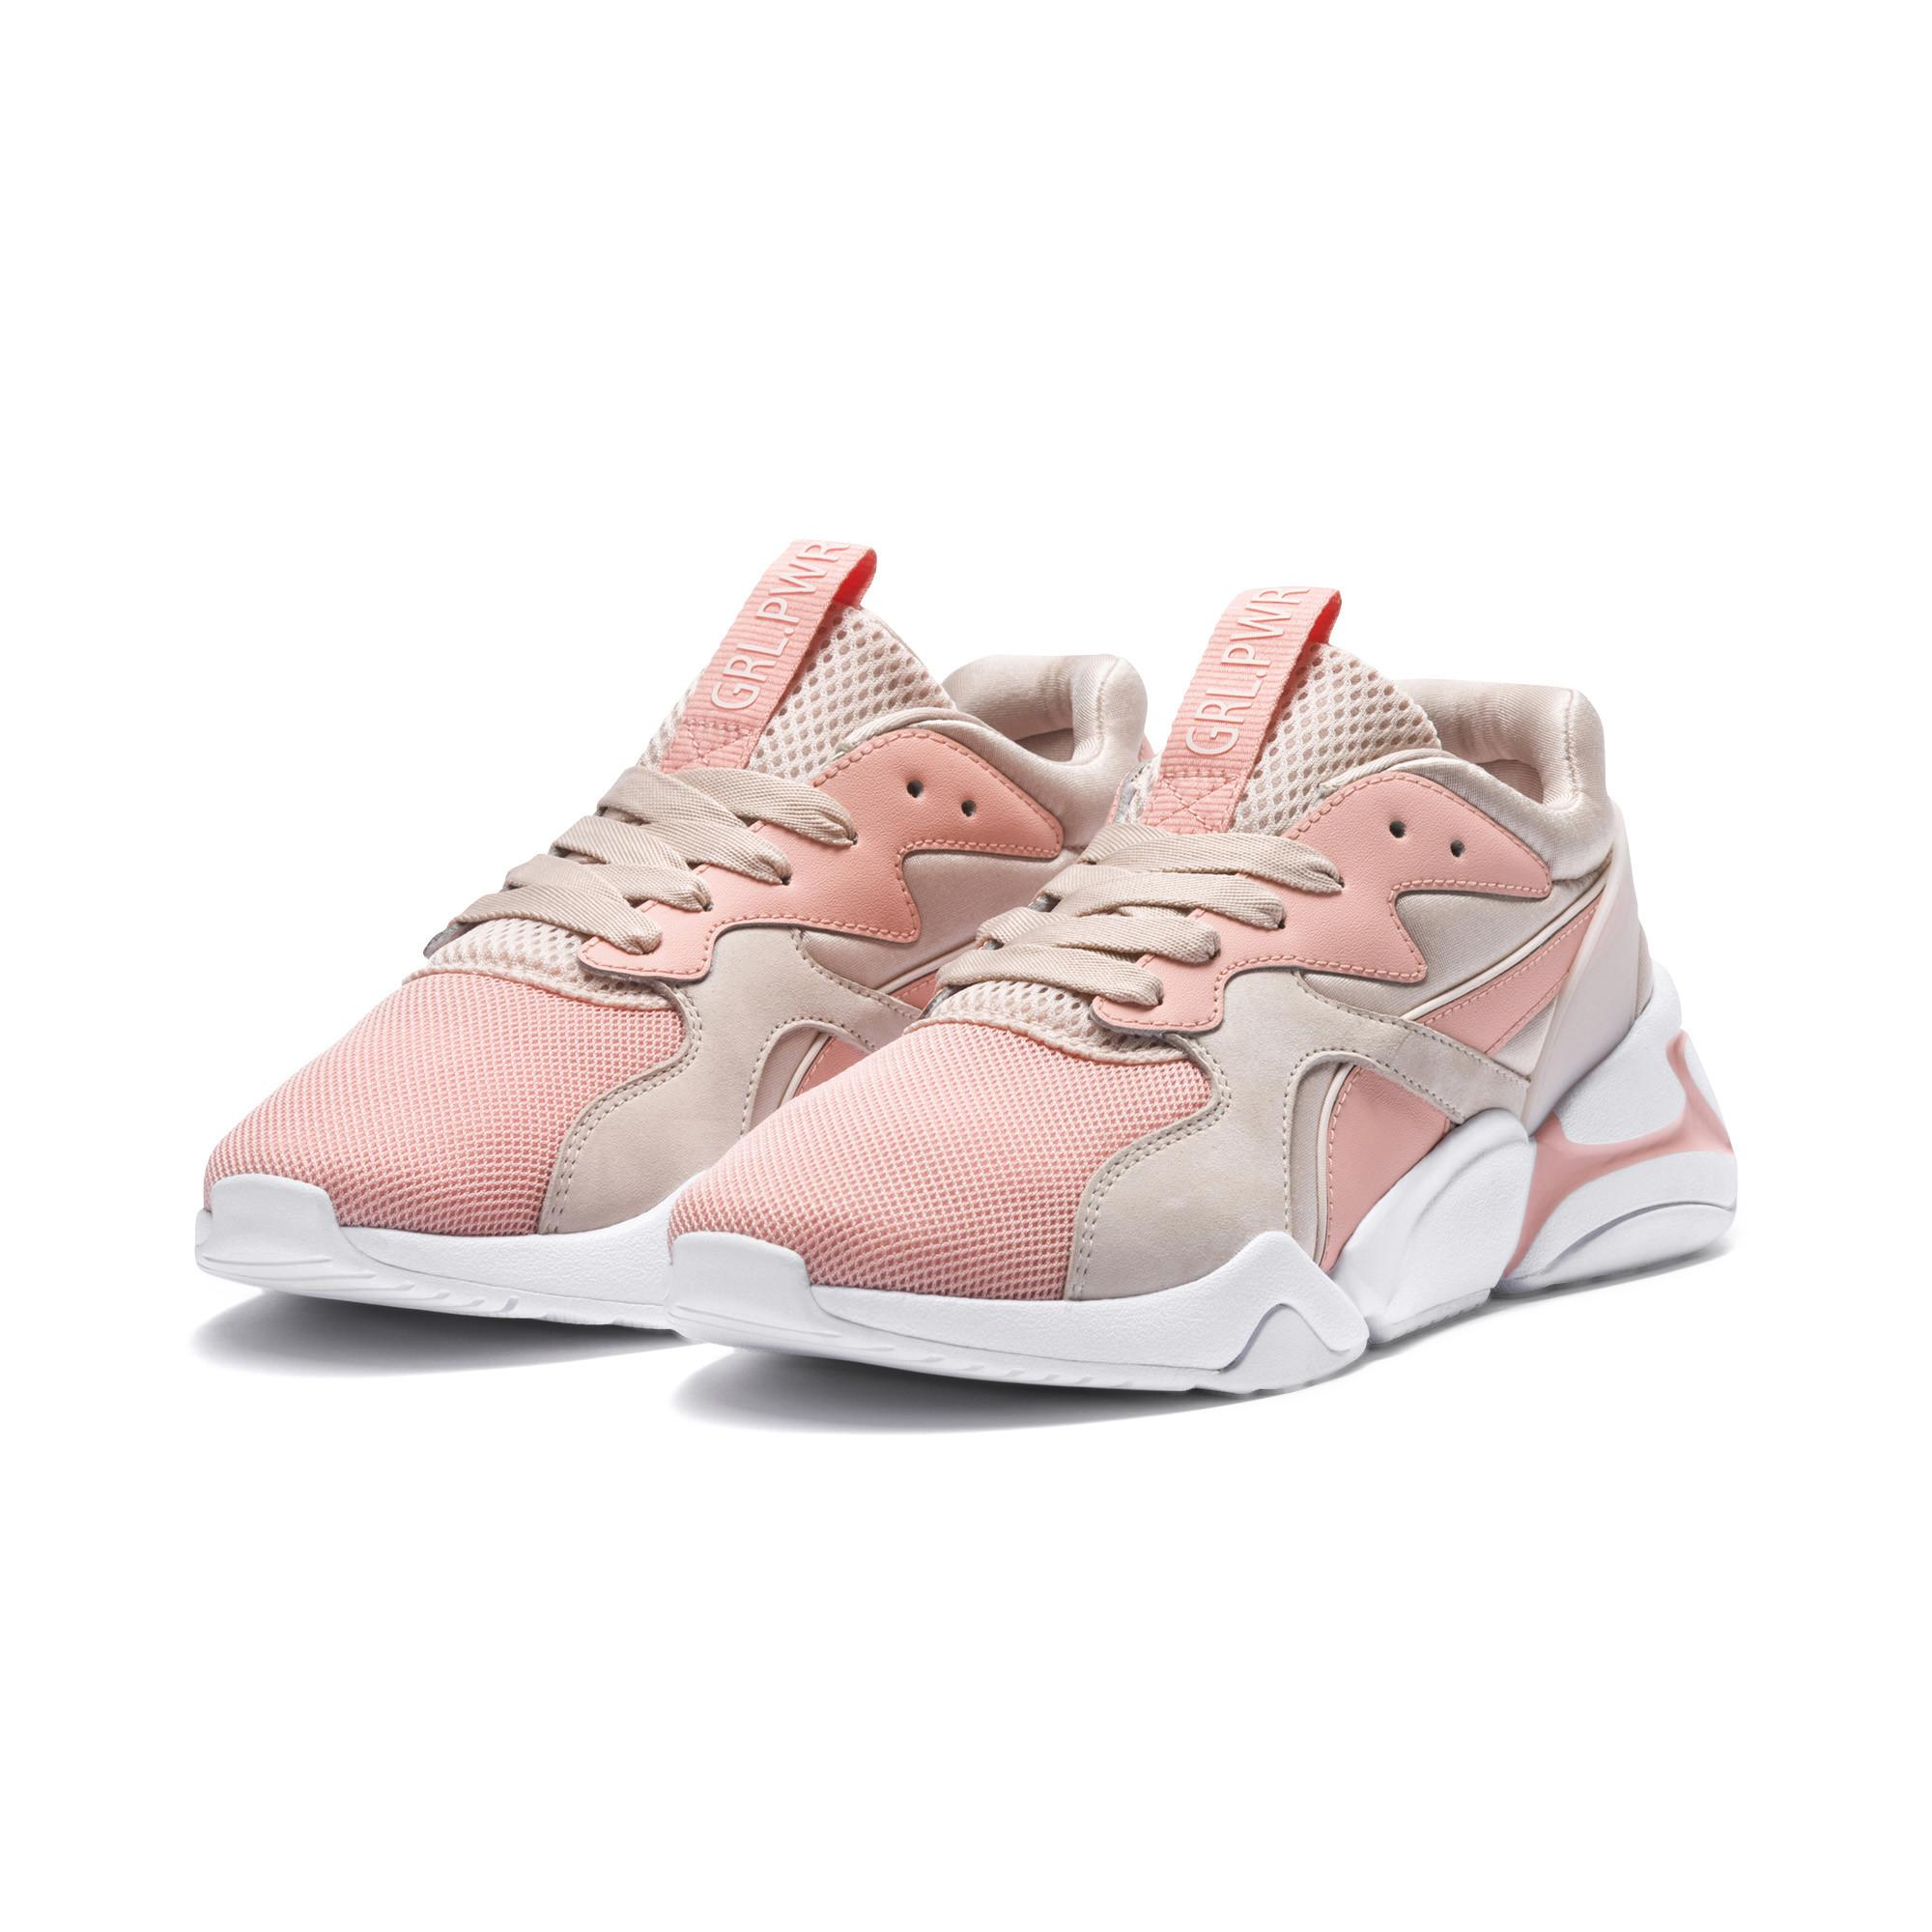 d8f8bb0cf73911 PUMA - Multicolor Nova Grl Pwr Women s Sneakers - Lyst. View fullscreen